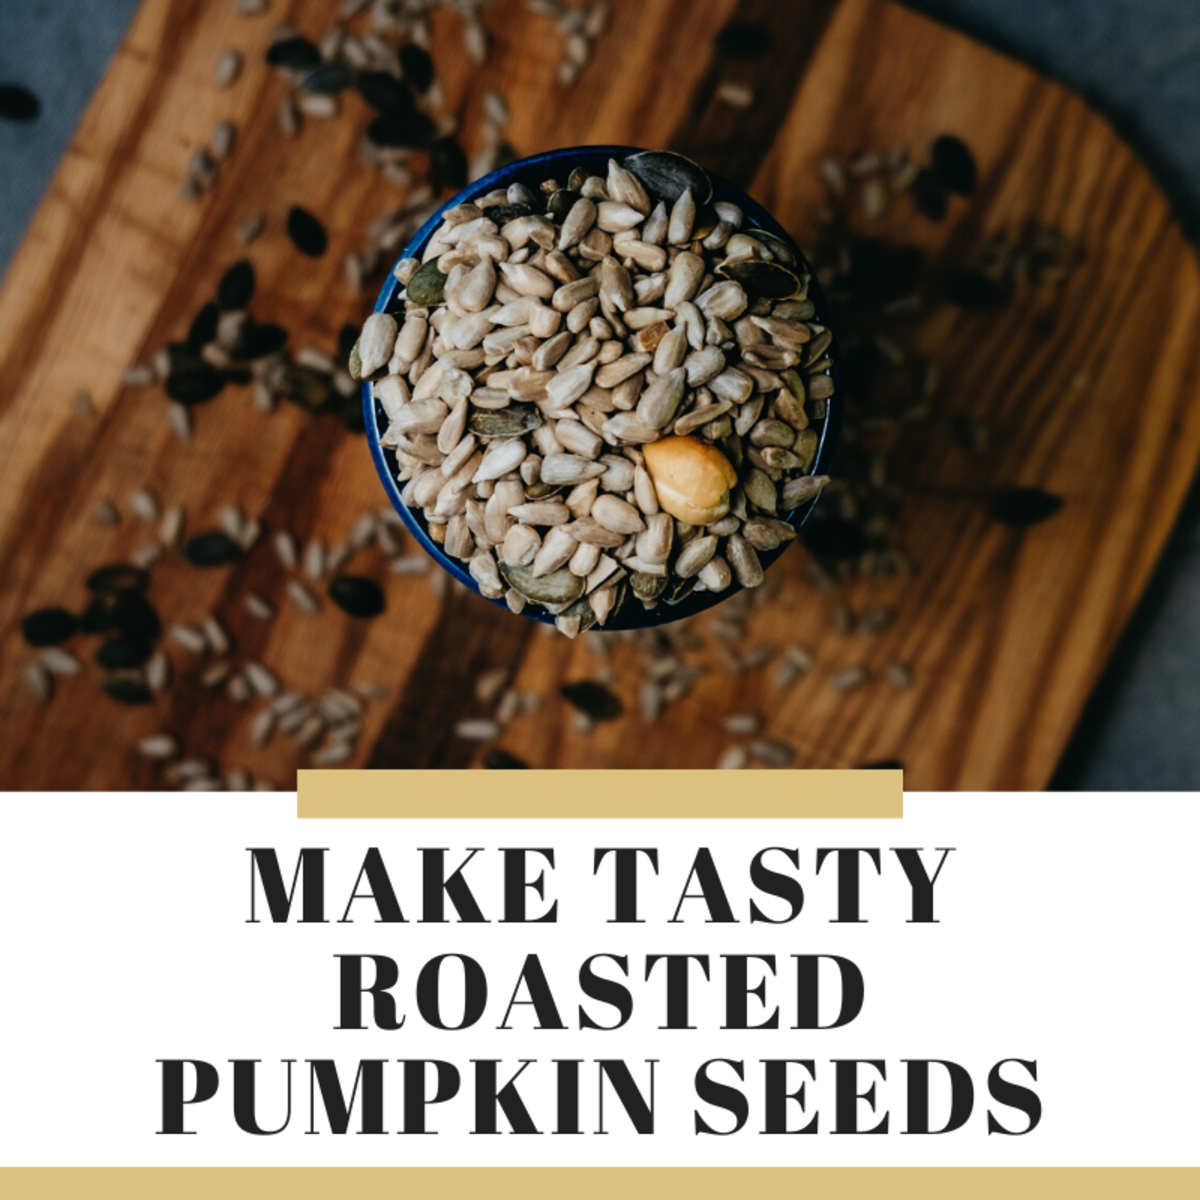 Your whole family will love the taste of these delicious pumpkin seeds.